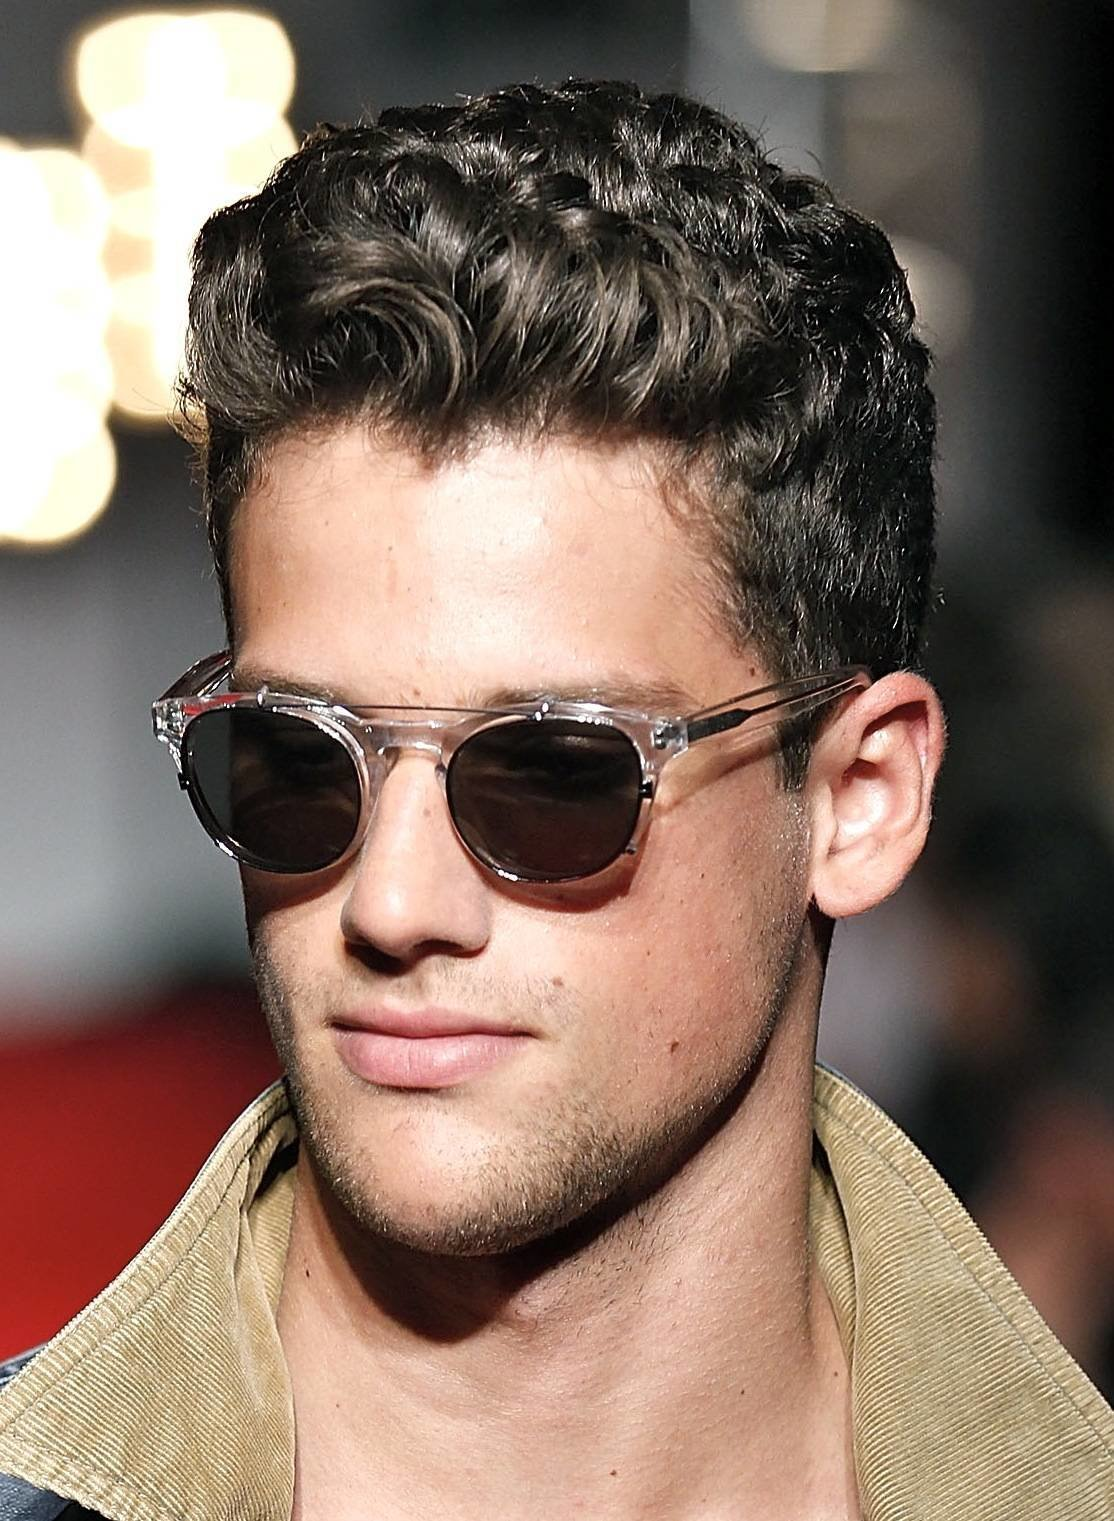 New Men's Curly Hairstyles Stylespedia Com Ideas With Pictures